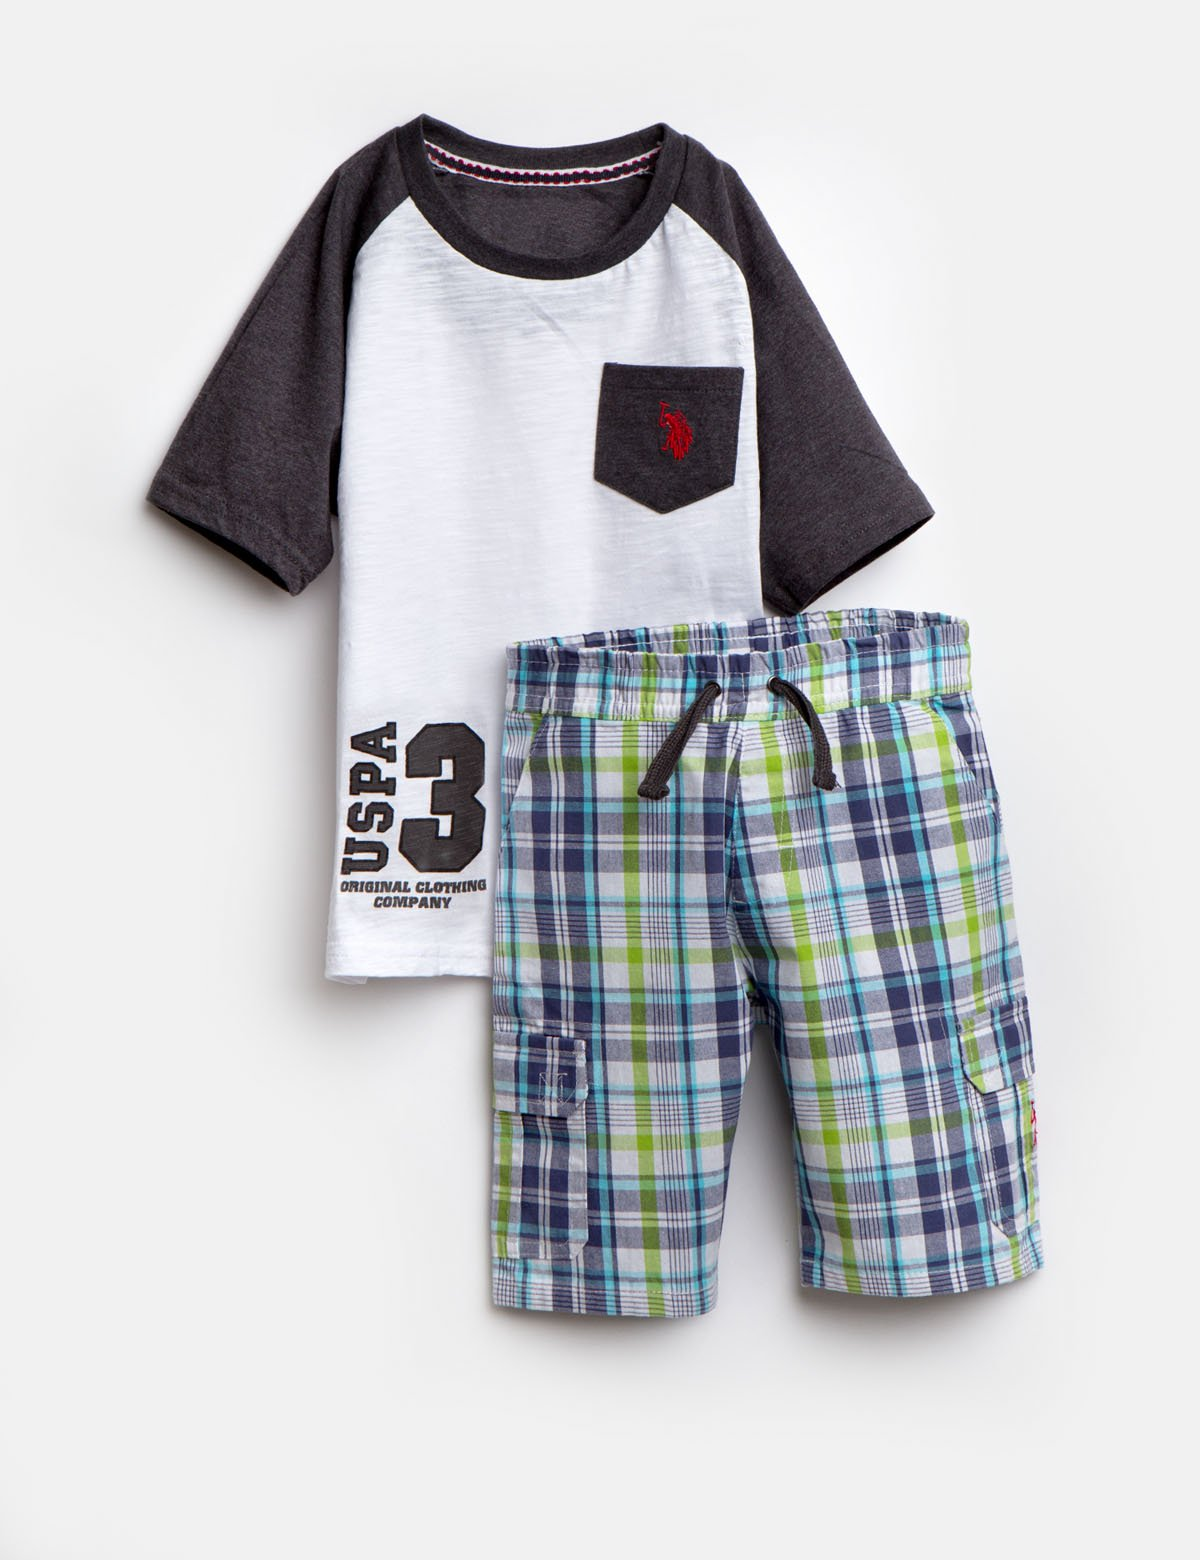 BOYS 2 PIECE SET: TEE & SHORTS